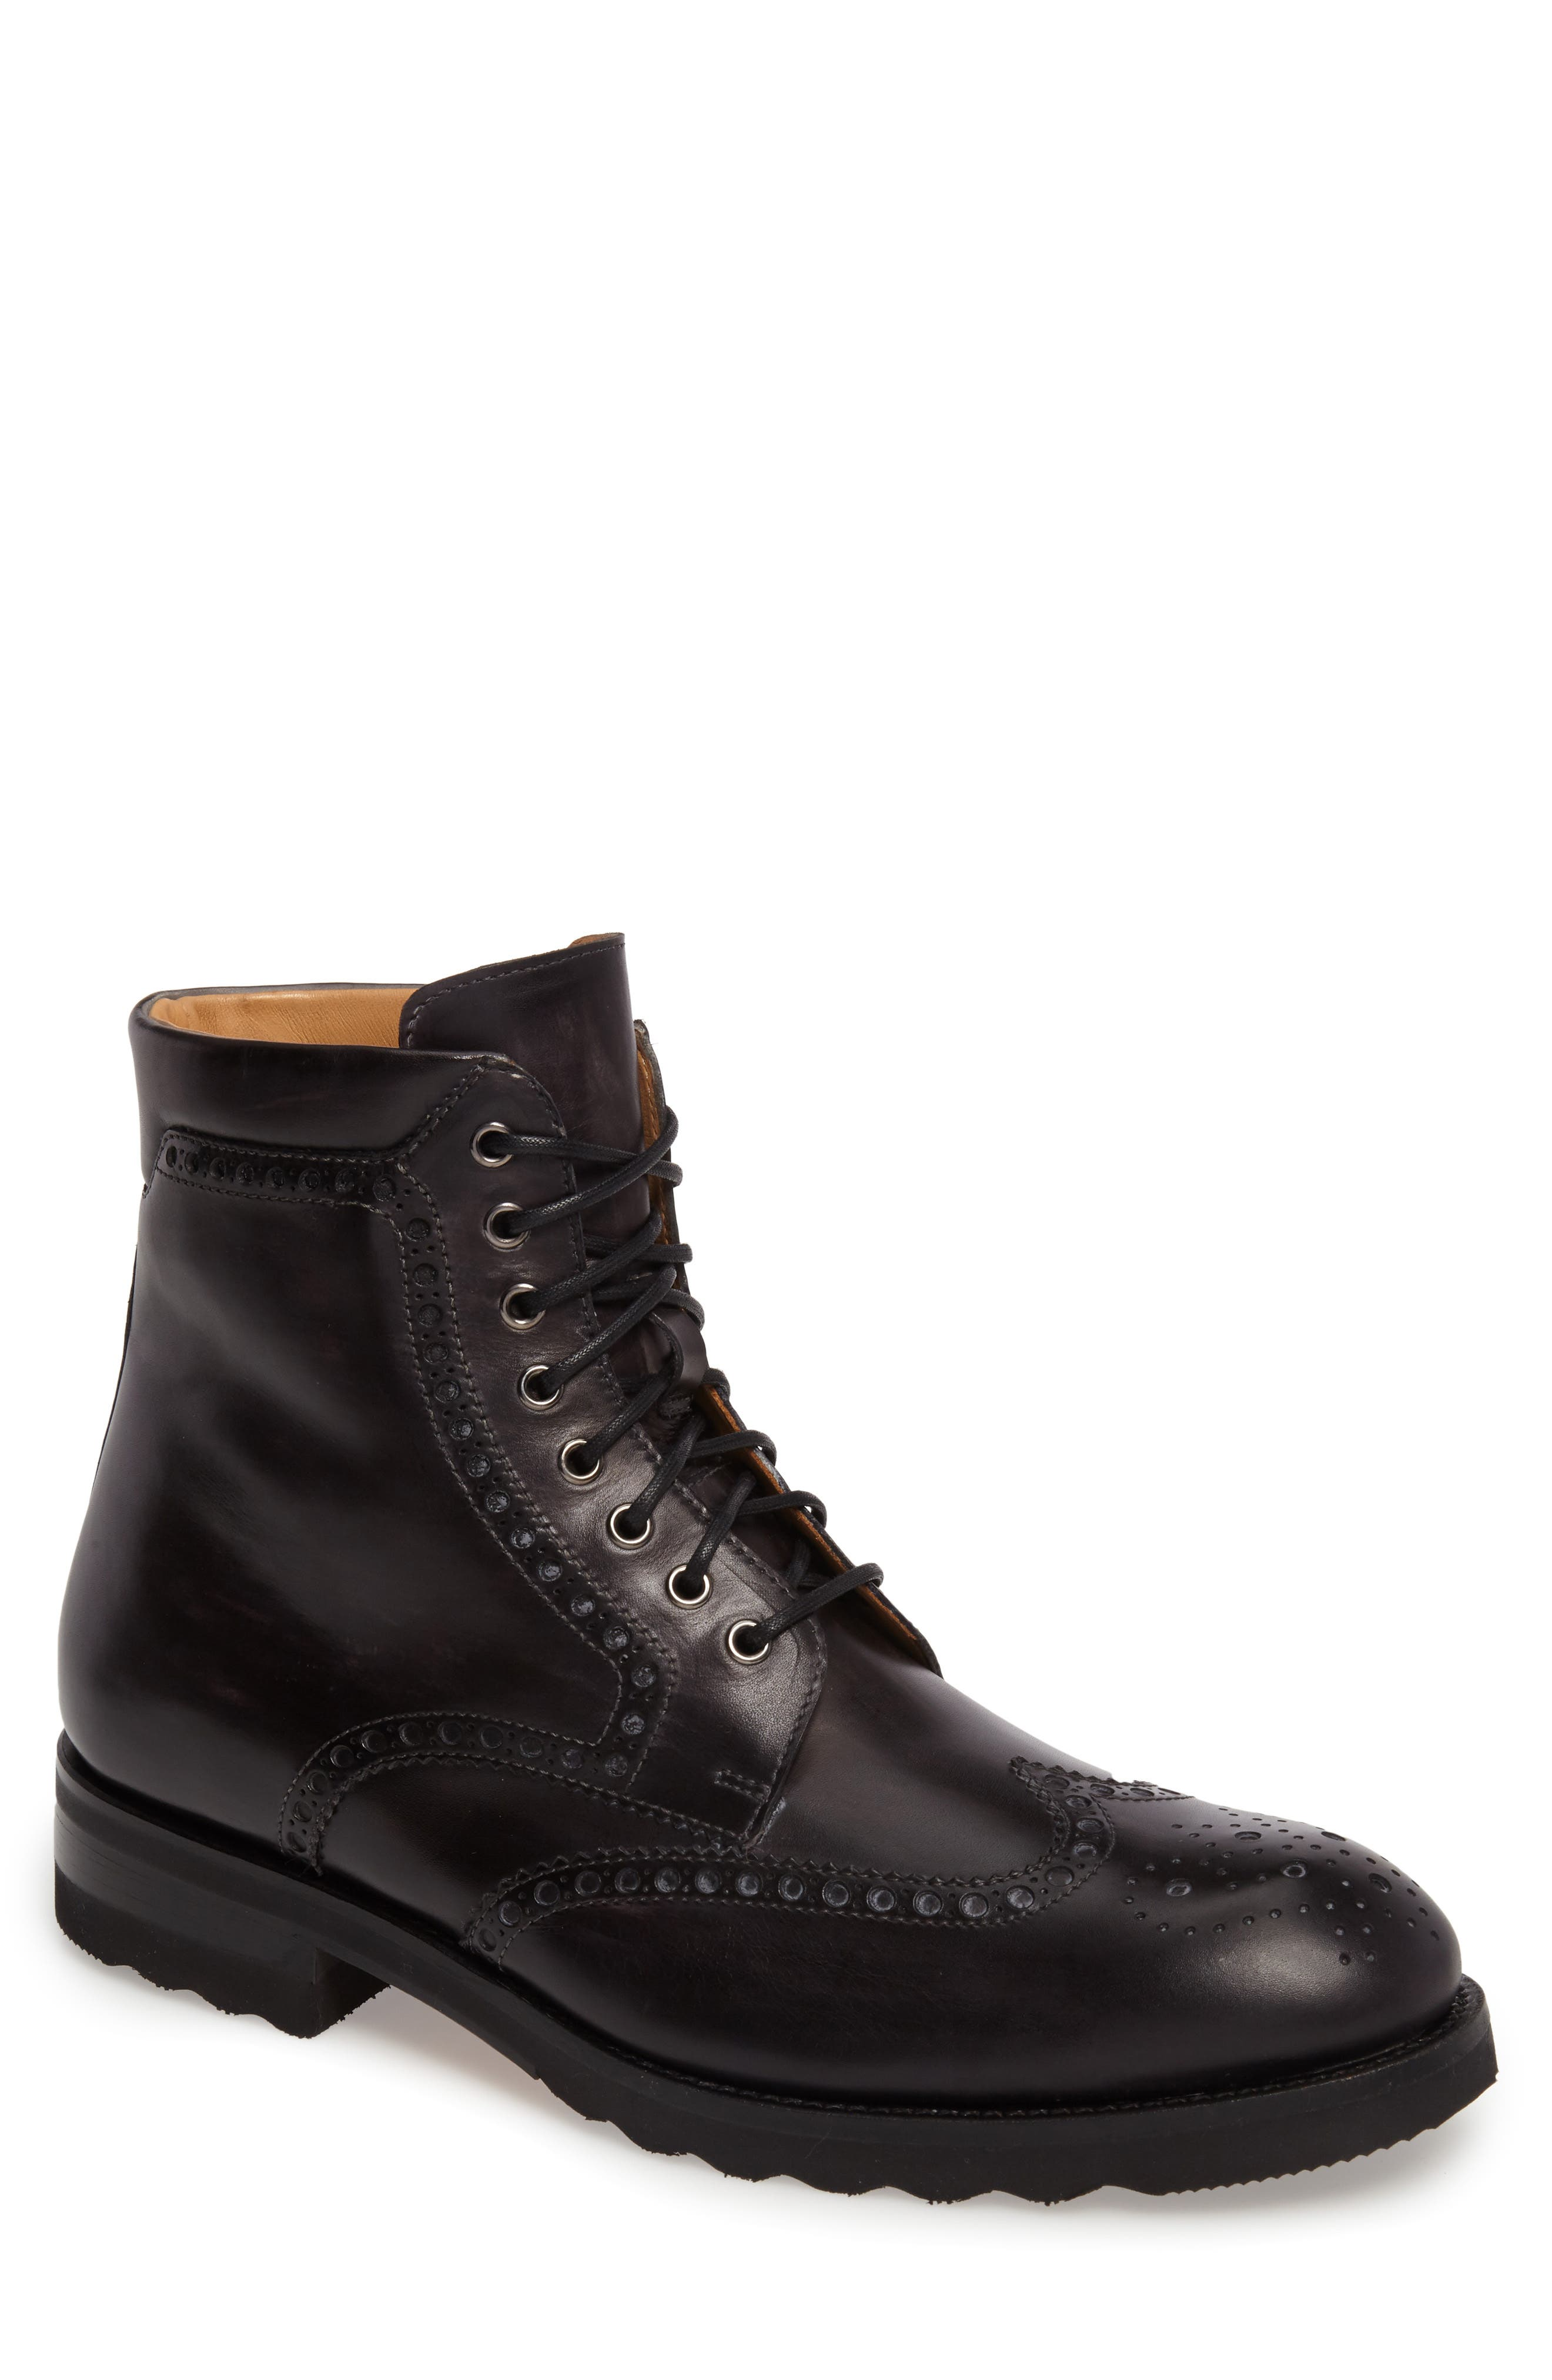 Fairfax Wingtip Boot,                         Main,                         color, 020